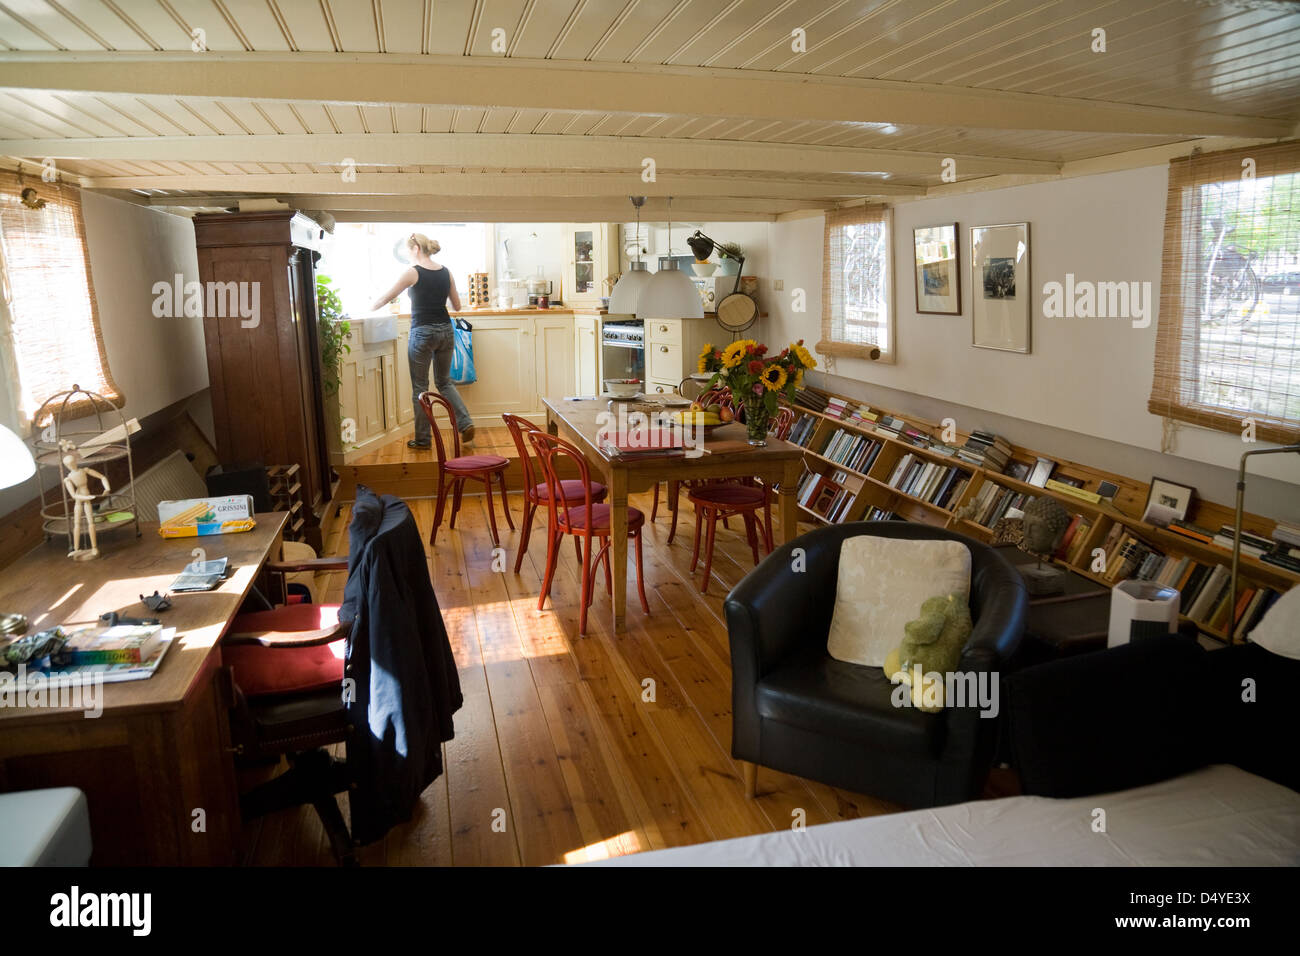 Exceptionnel Amsterdam, Netherlands, The Interior Of A Houseboat